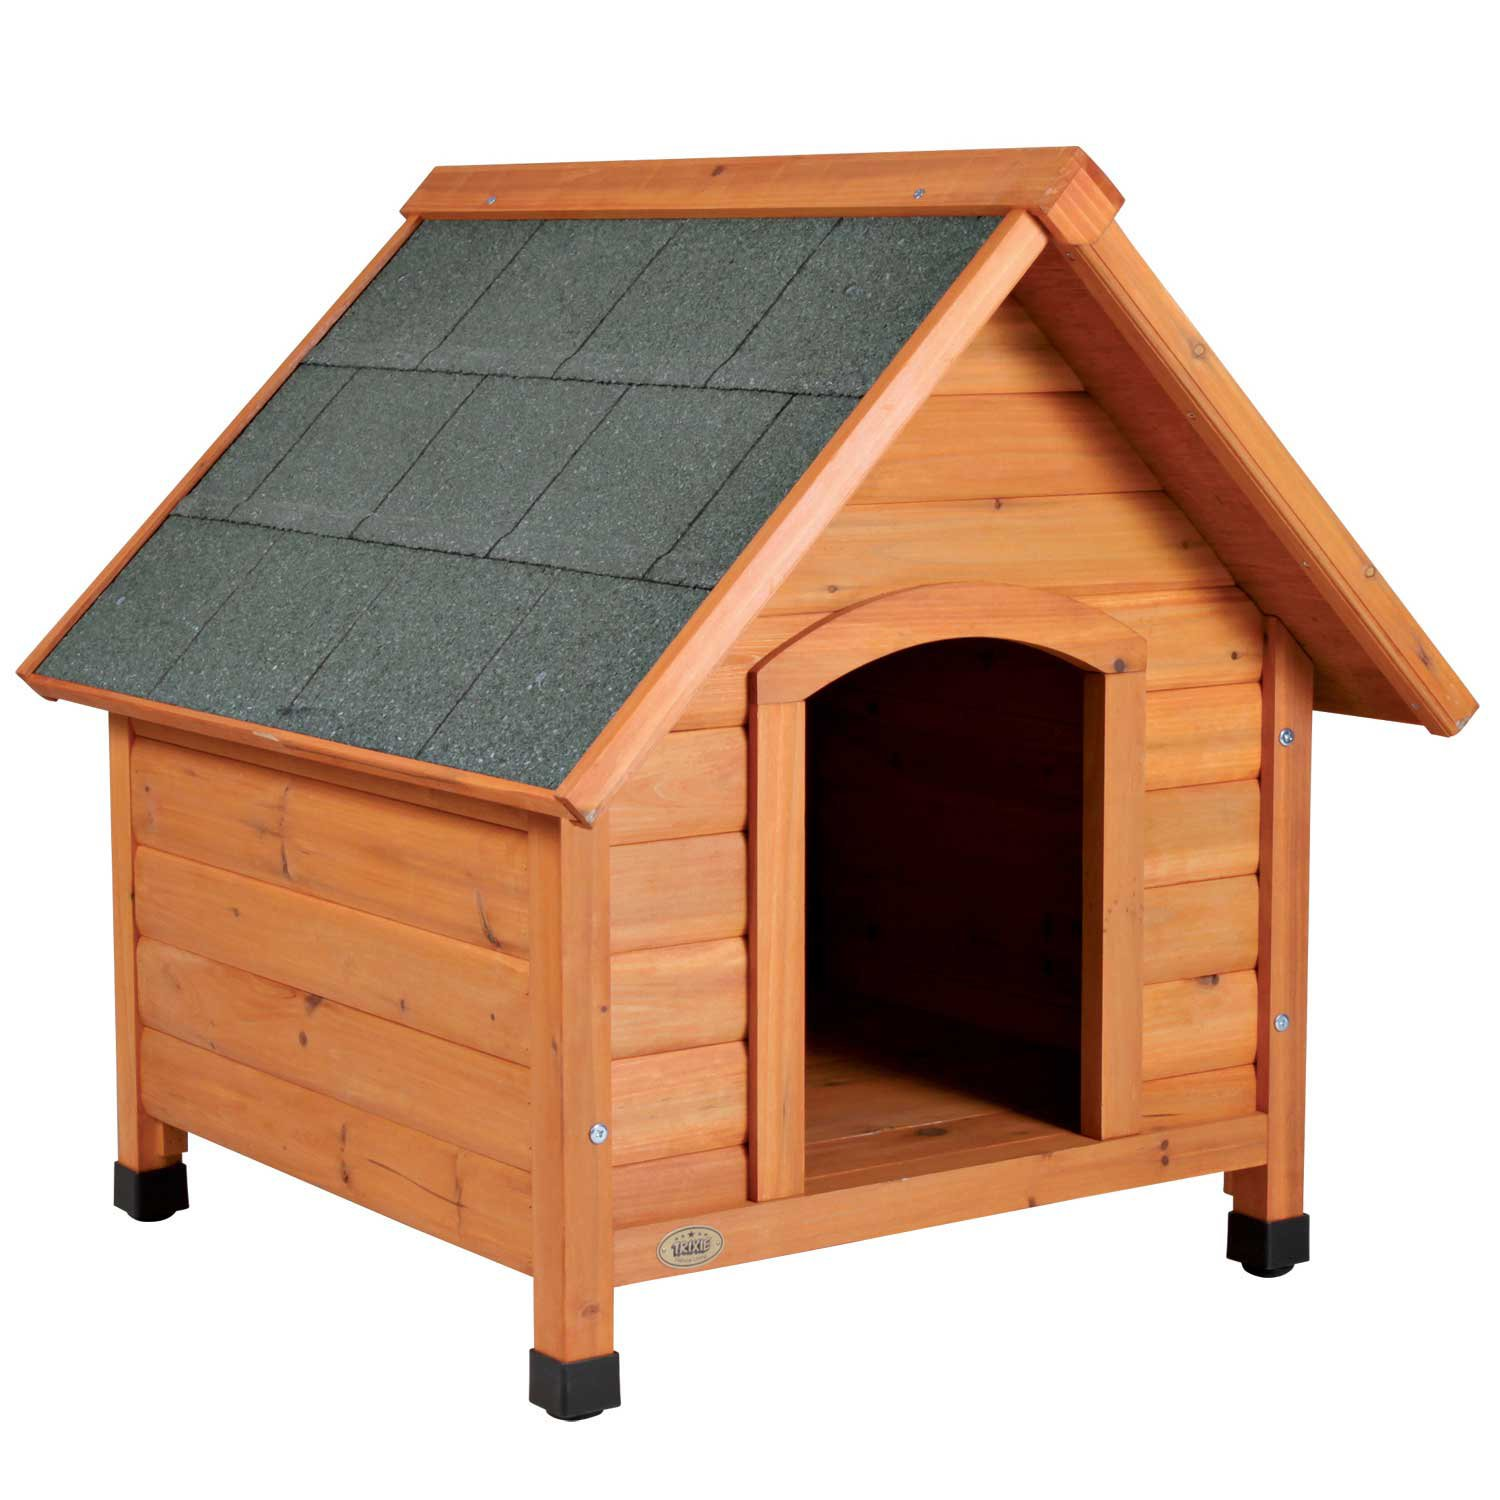 WARE Premium Plus Dog Houses are made with a design and materials intended to provide you and your pet with a long lasting premium dog house. The solid wooden dog house frame is made ith fir and sealed with a water-based non-toxic stain.